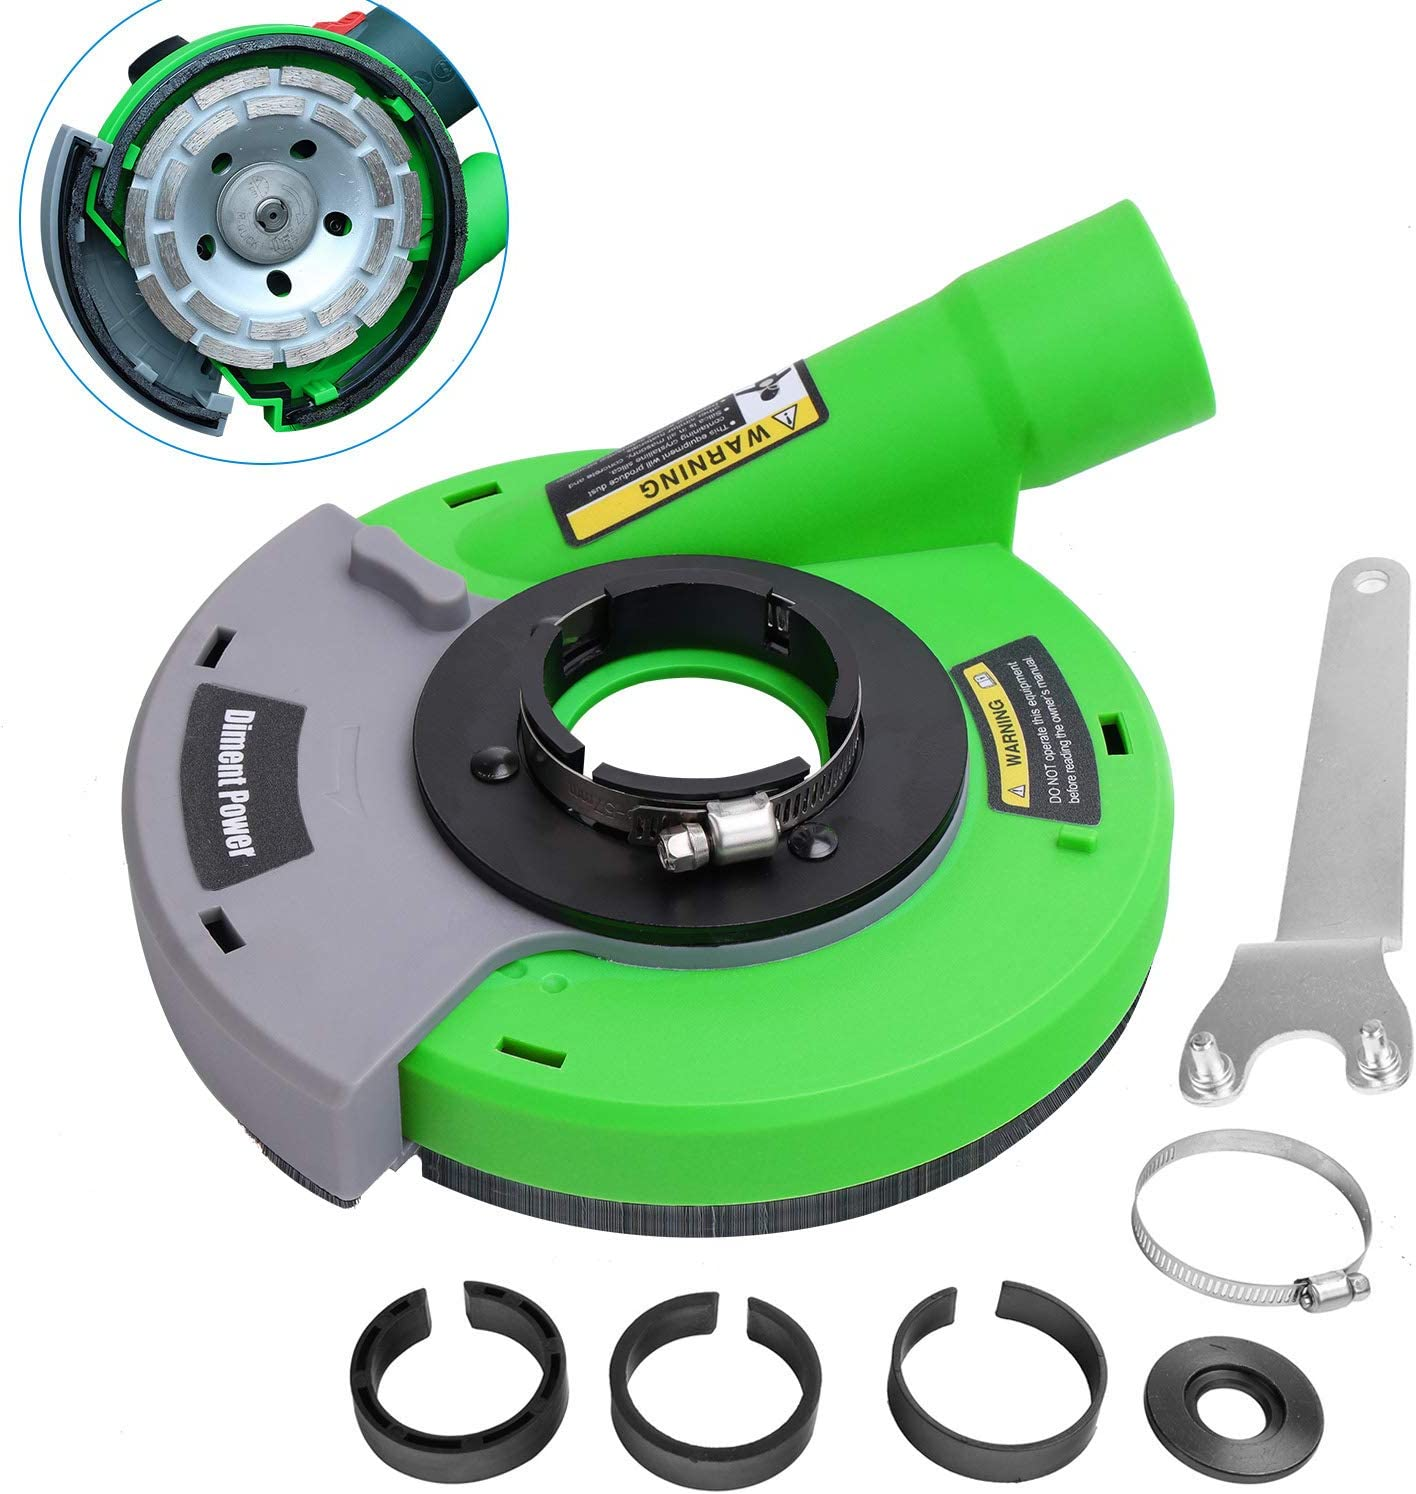 Max 66% OFF Diment Power Surface Excellence Grinding Dust Angle for Grinder Shroud 115m